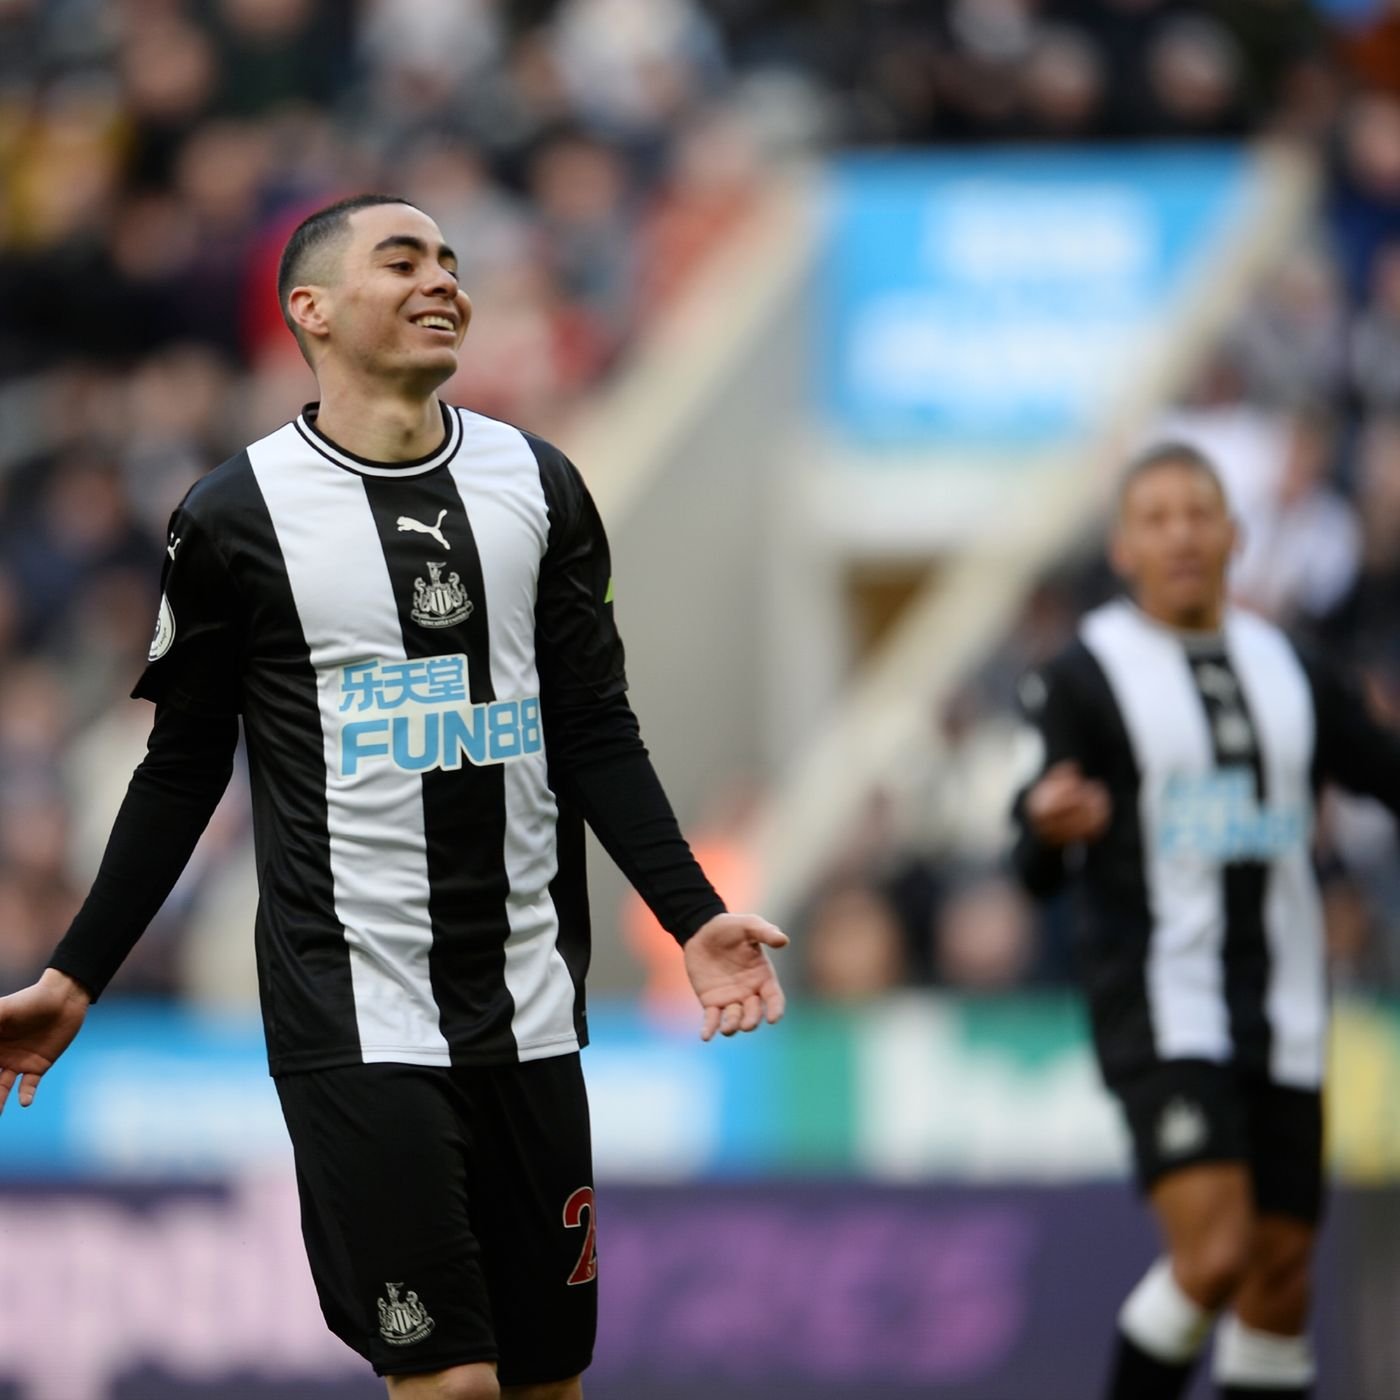 Newcastle 0-0 Burnley: A point closer to safety but frustration lingers